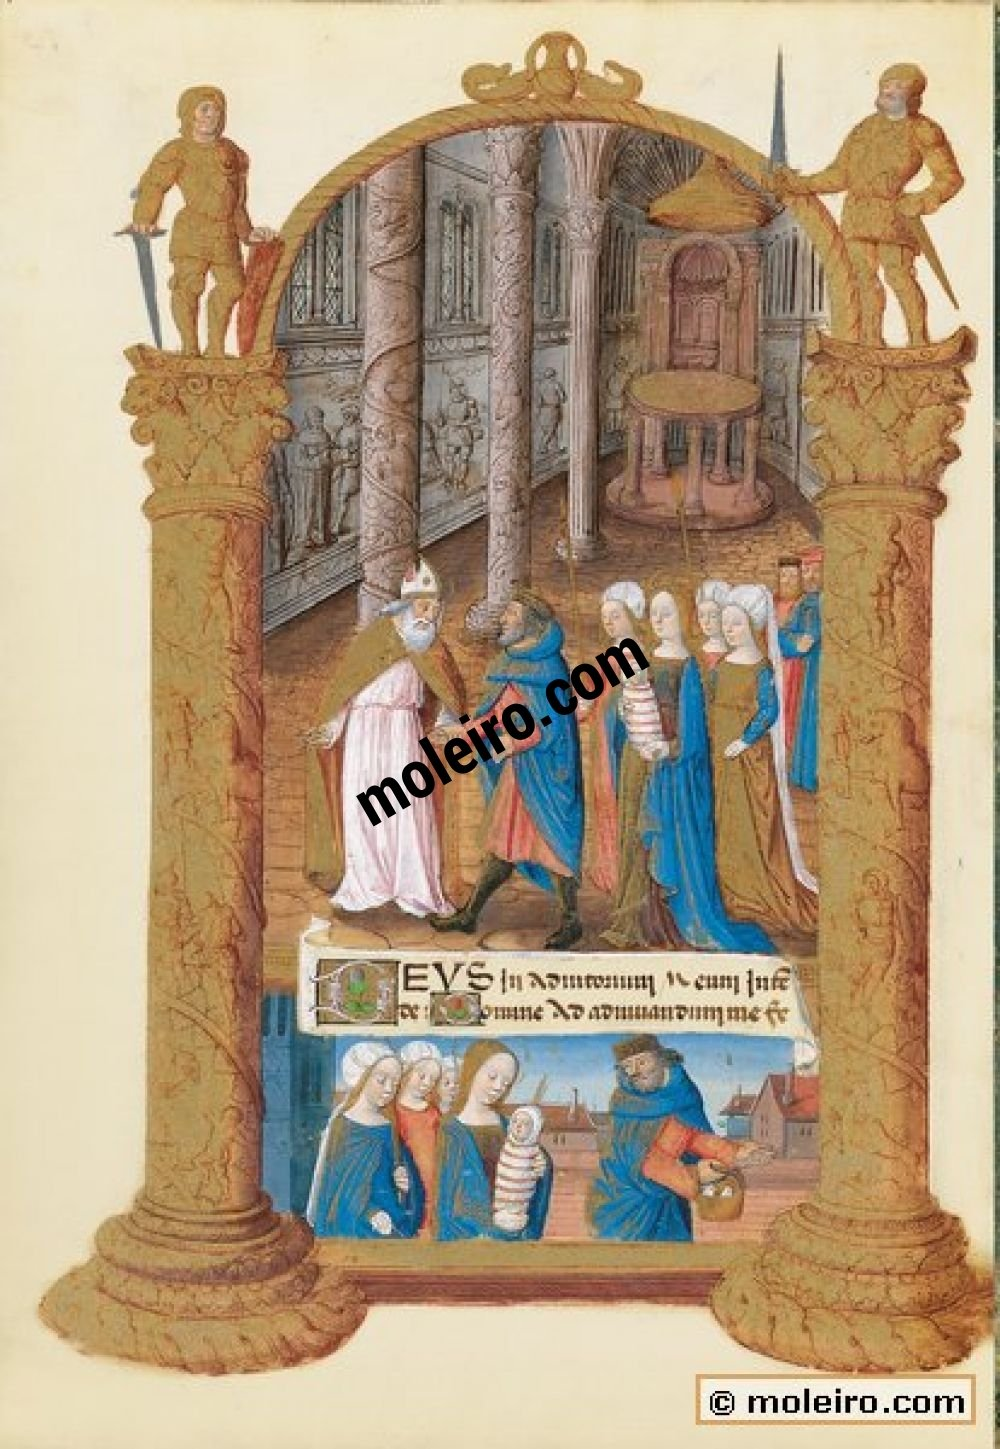 Book of Hours of Louis of Orleans f. 33v, Nones: the Presentation in the Temple